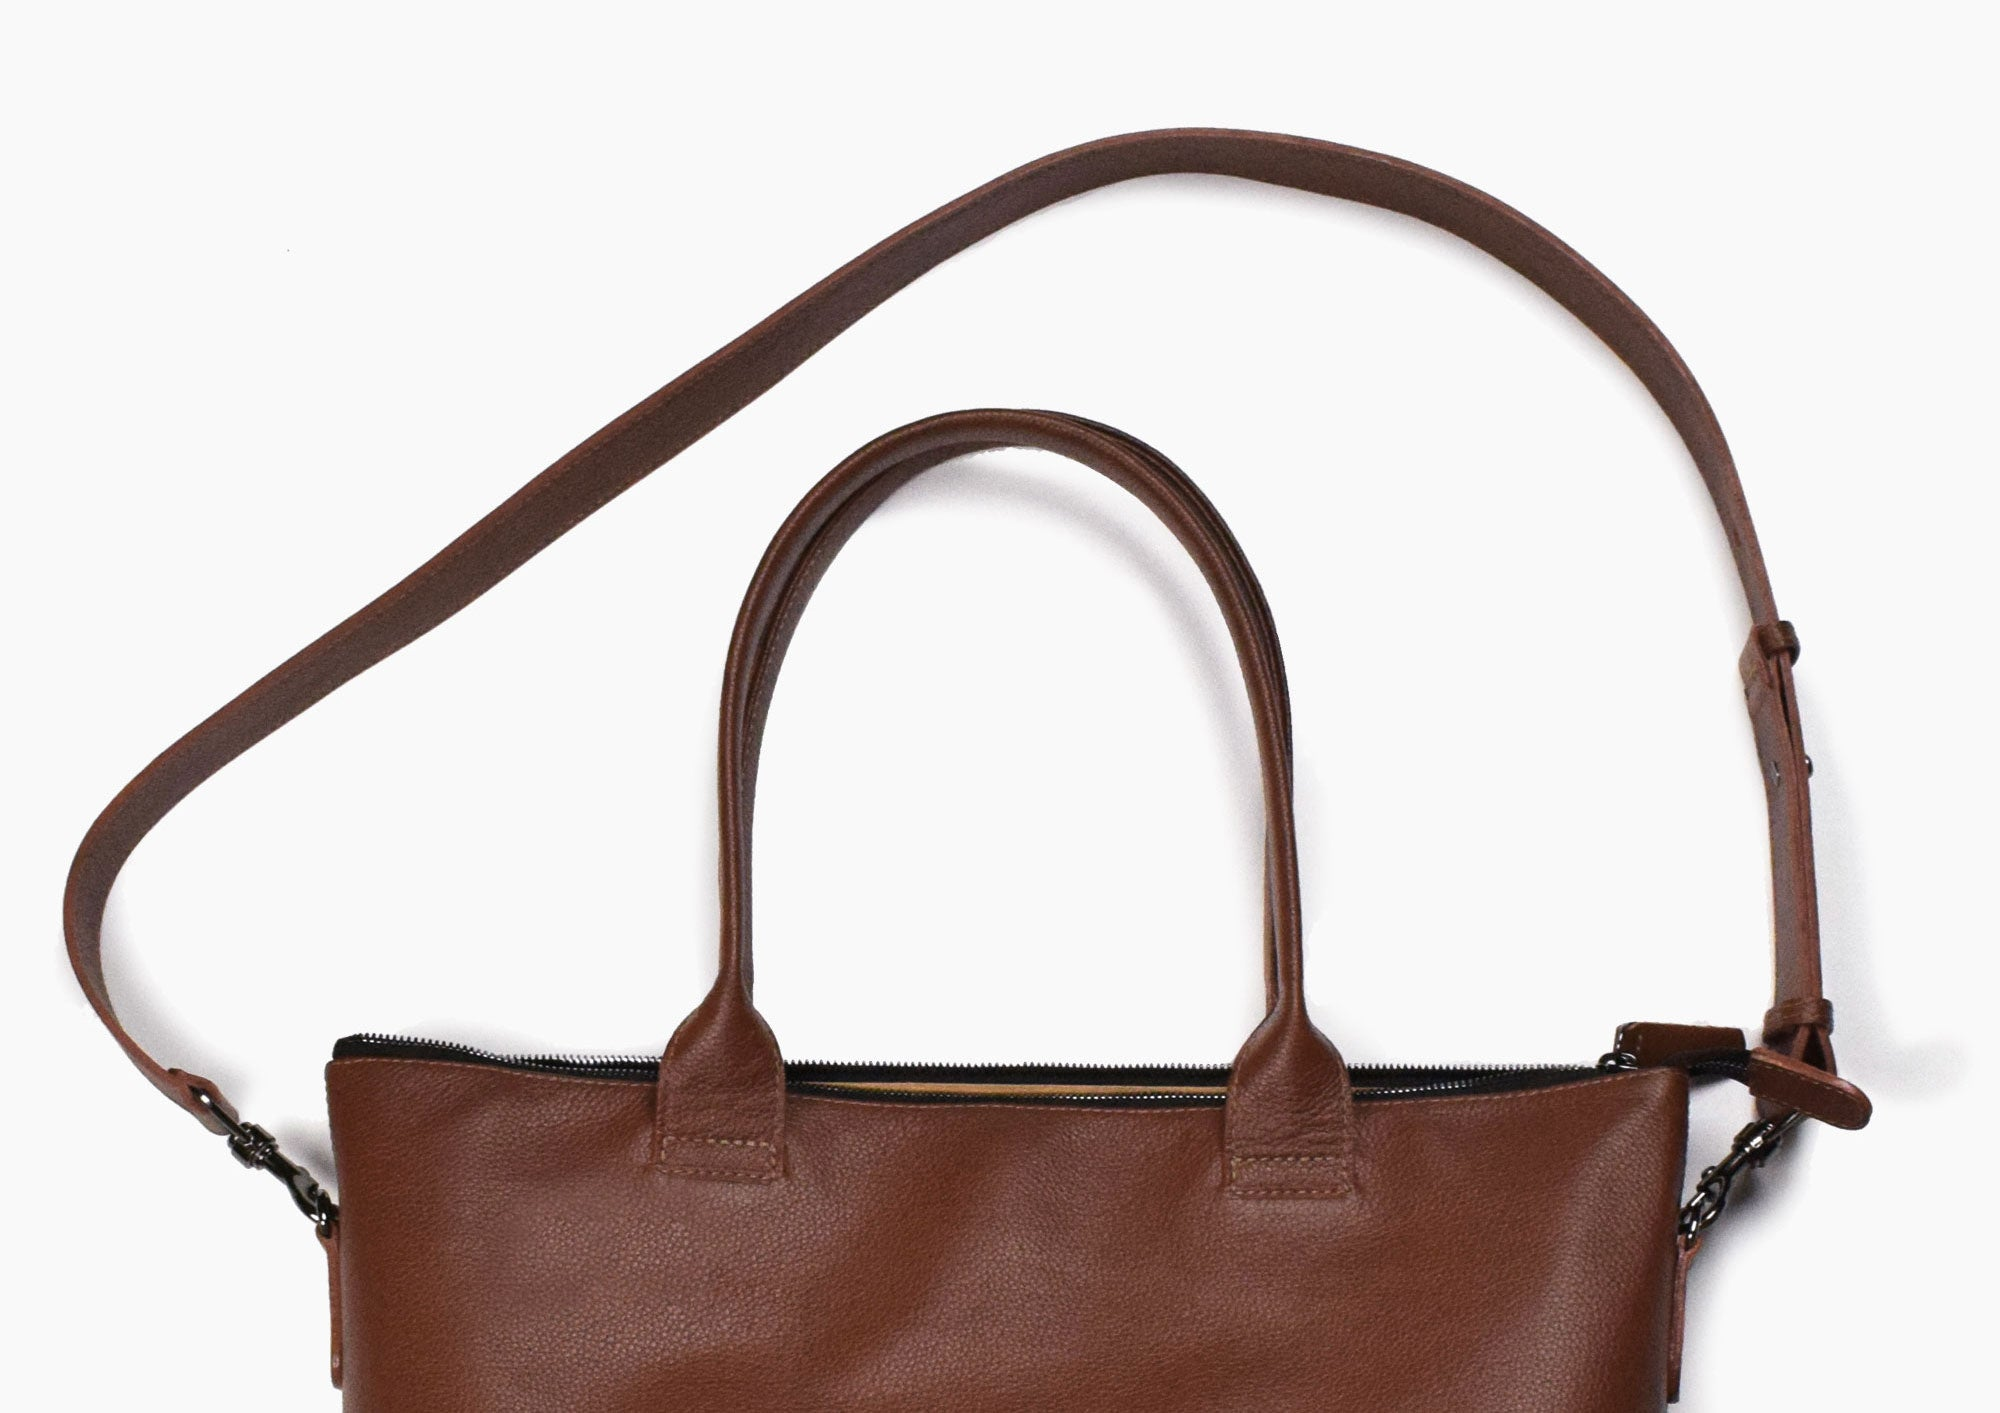 Daame tote strap highlights